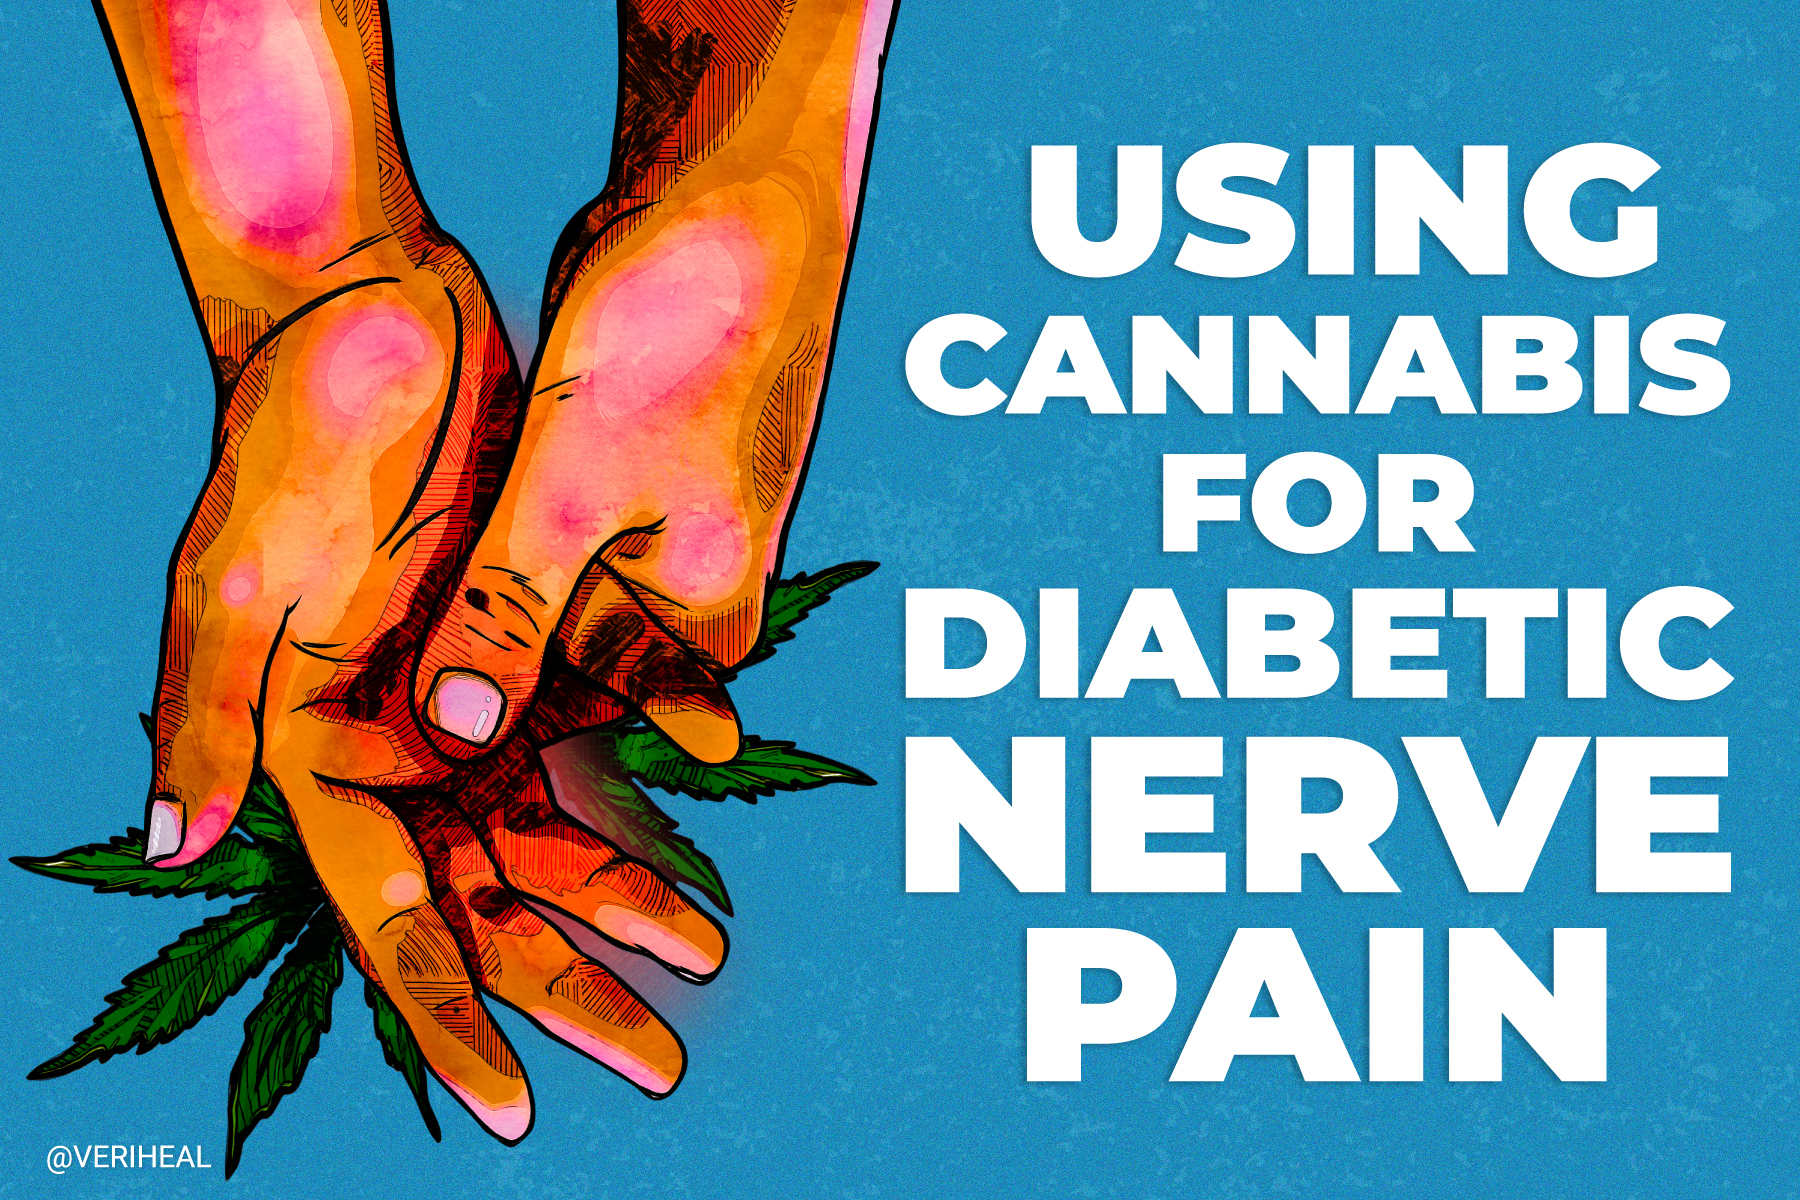 Using Cannabis for Diabetic Nerve Pain